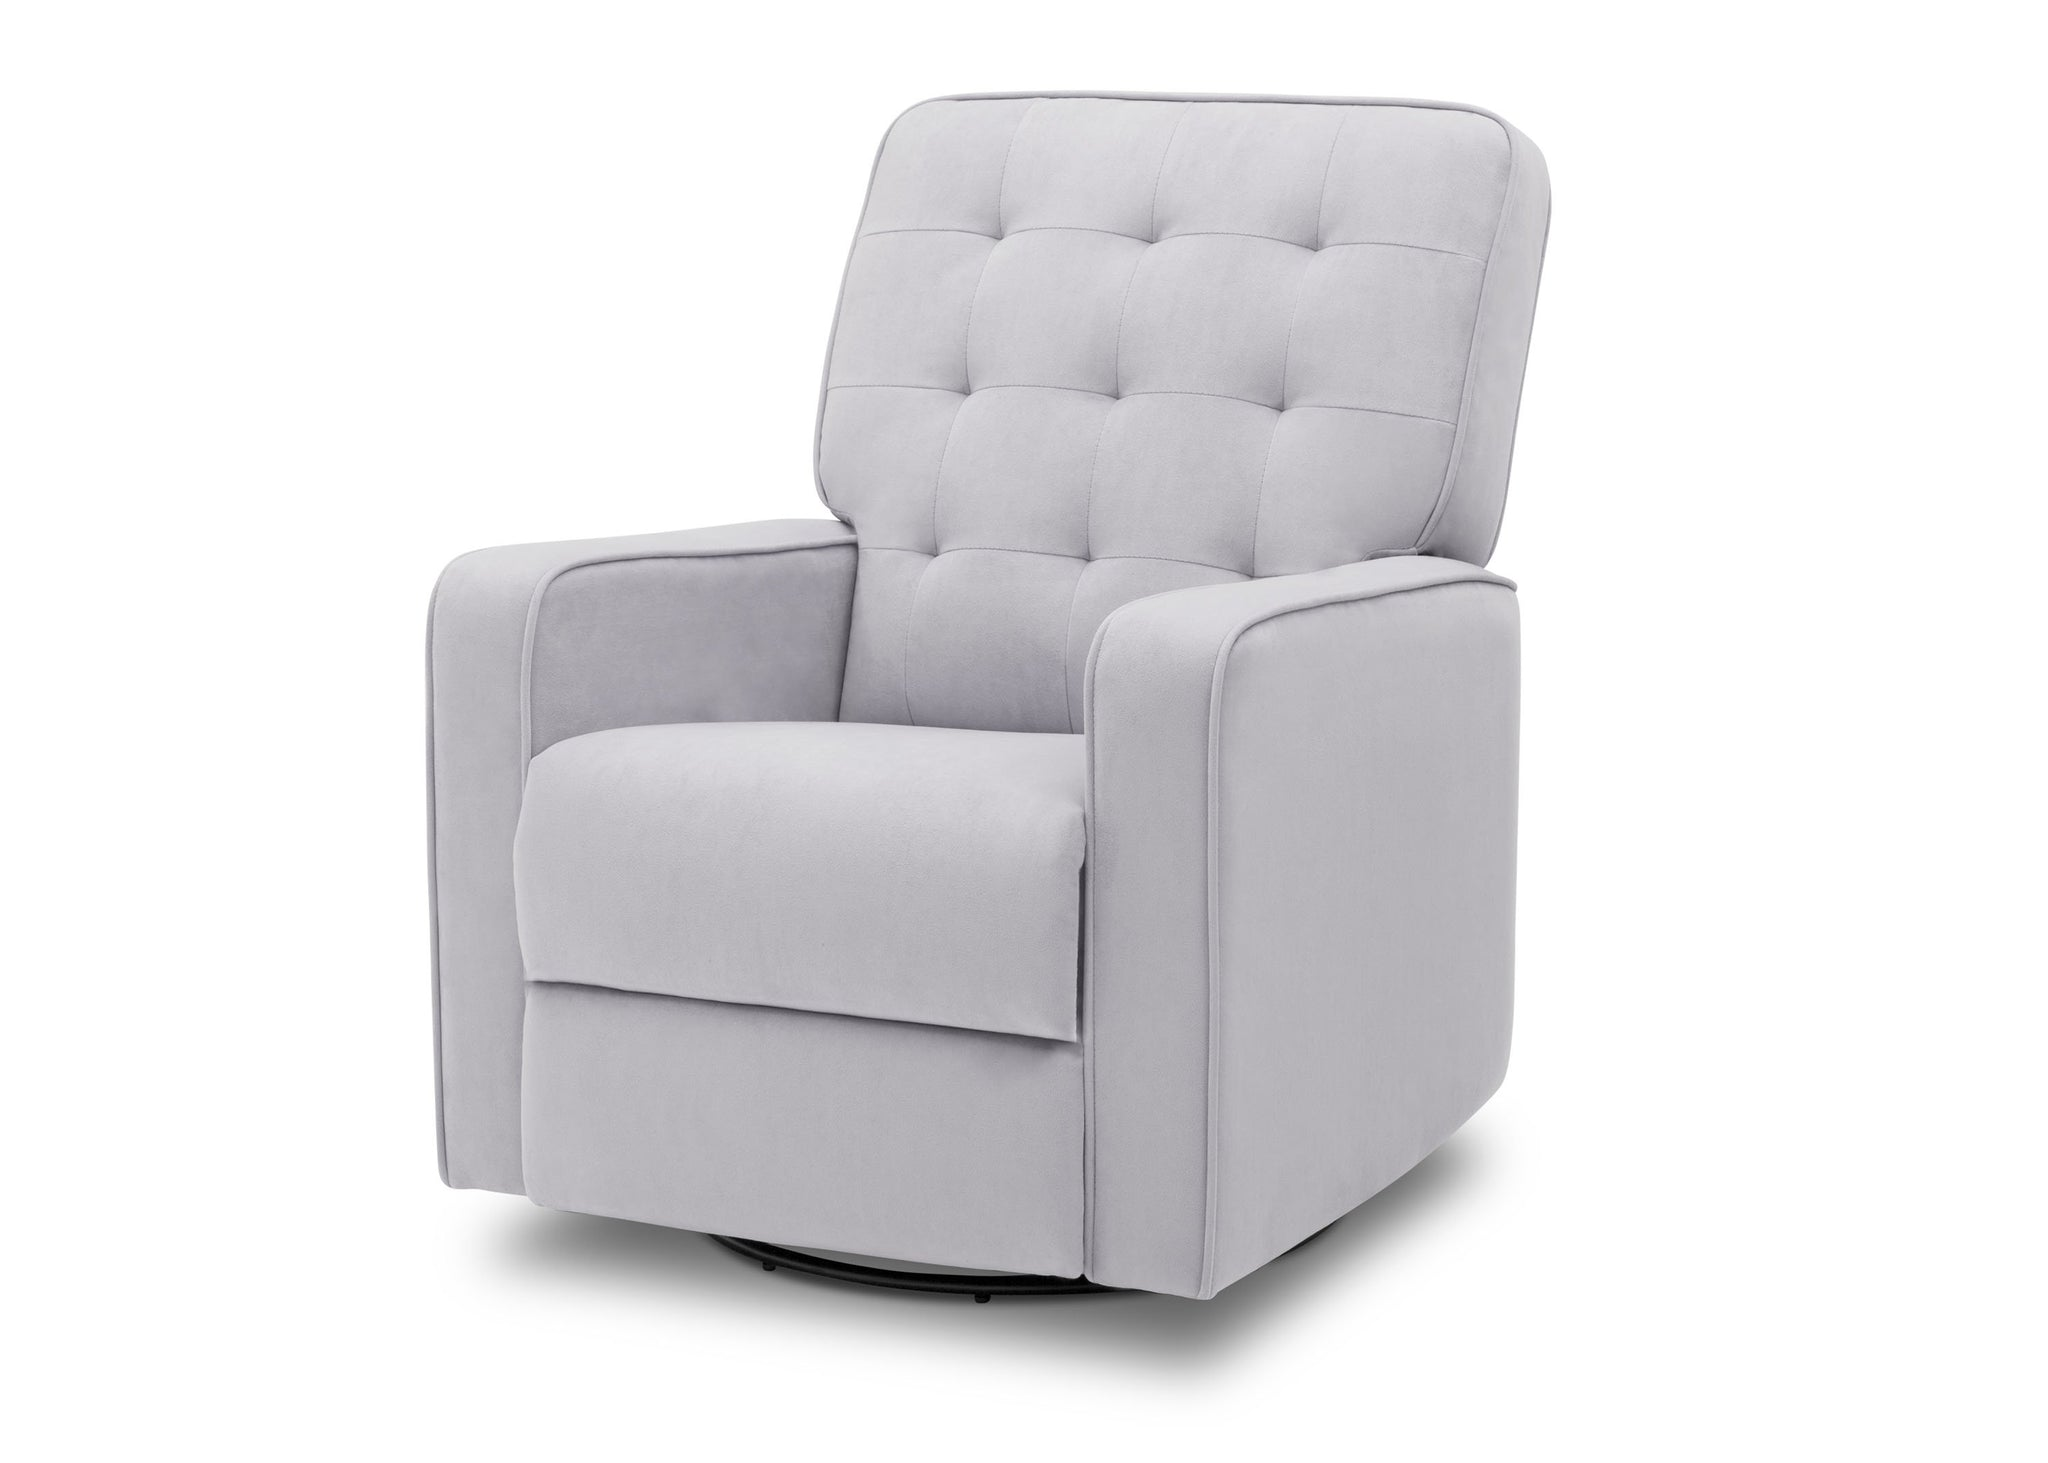 Delta Home Linen (150) Grant Glider Swivel Recliner, Left Silo View